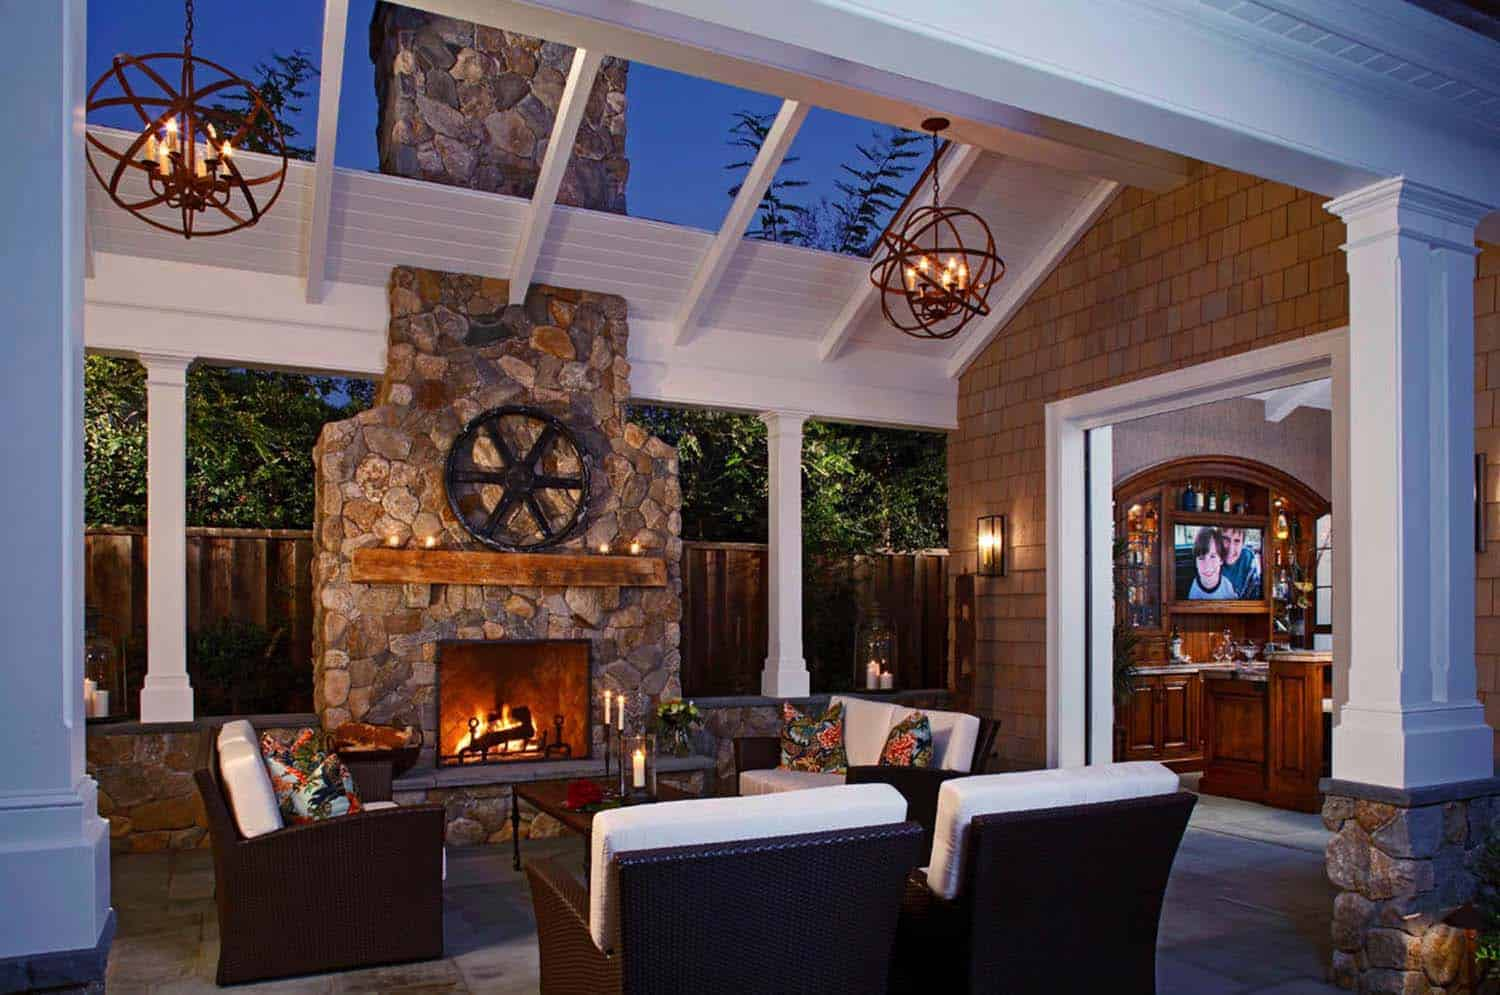 30+ Irresistible outdoor fireplace ideas that will leave ... on Outdoor Fireplaces Ideas id=25522